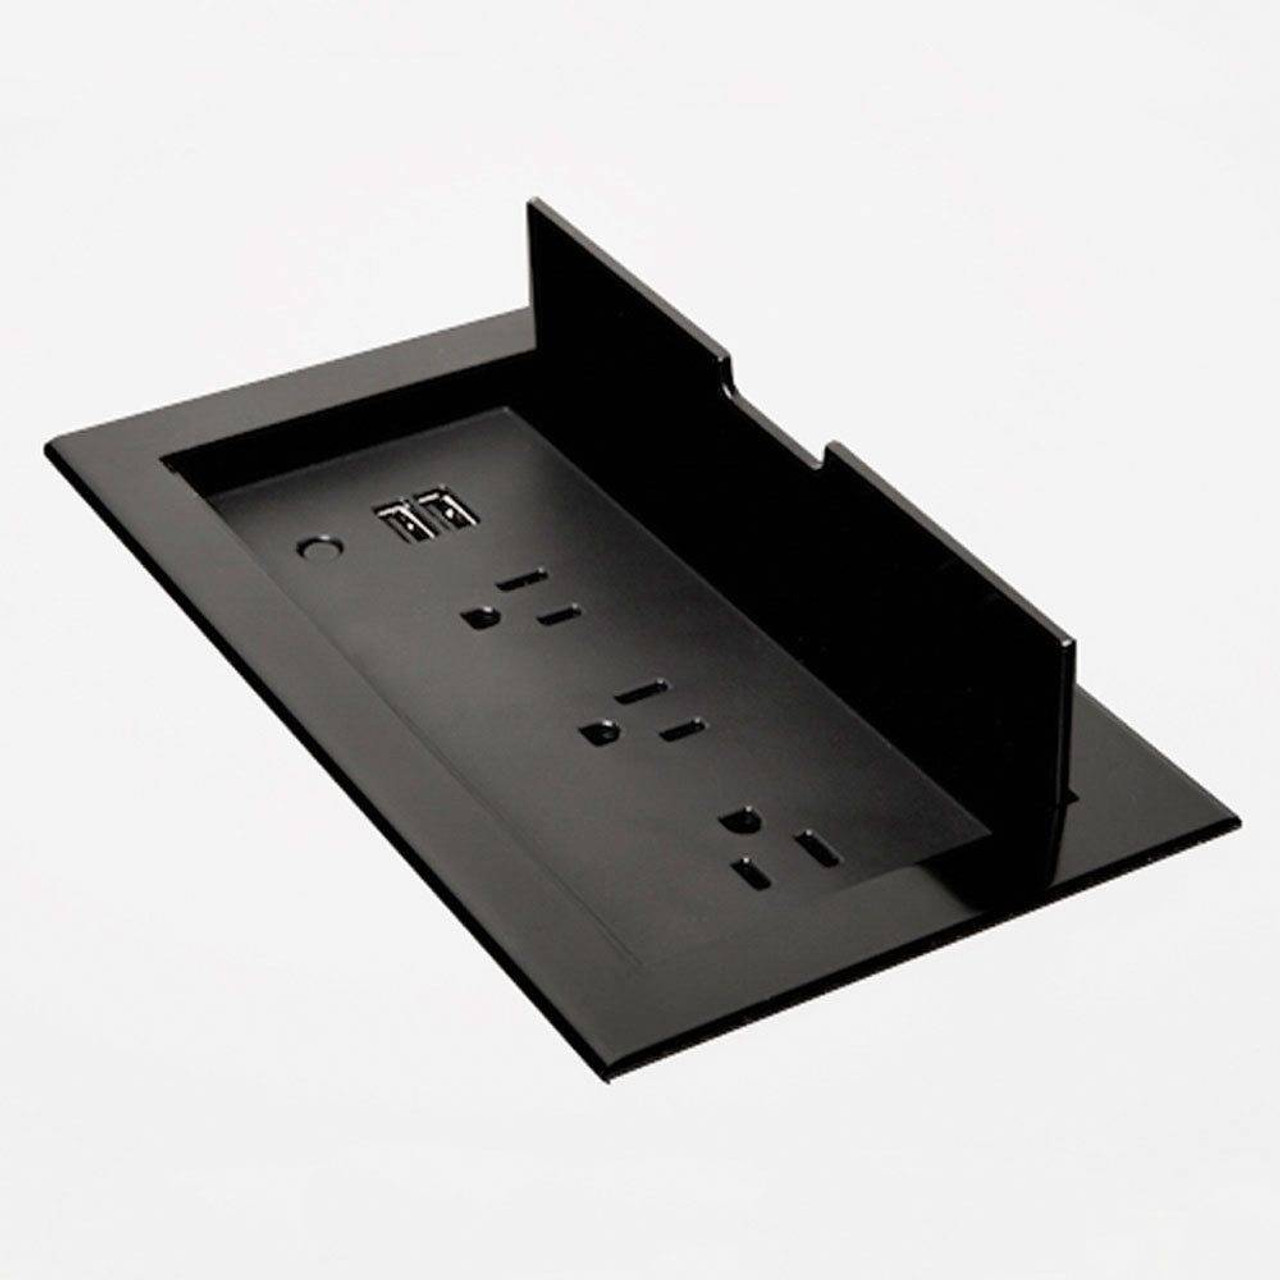 Brandstand BRANDSTAND CUBIEFLIP IN DESK POWER and CHARGING SOLUTION W/ 2 USB PORTS and 3 POWER OUTLETS and FACEPLATE BLACK